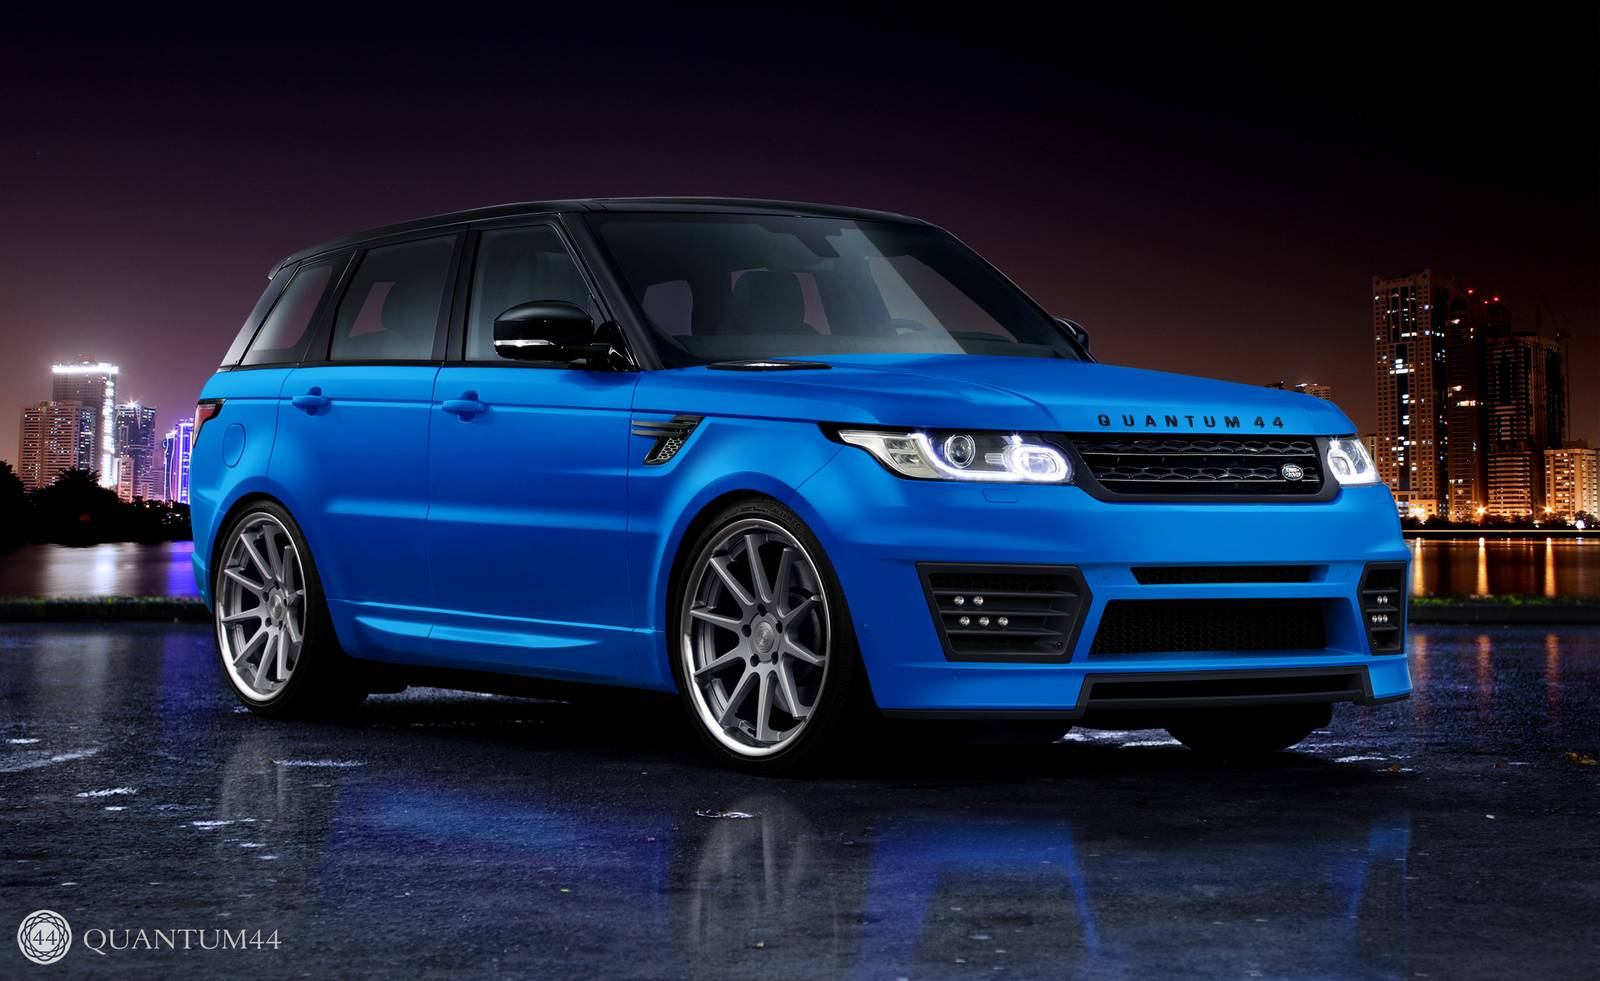 official 2014 range rover sport by quantum44 gtspirit. Black Bedroom Furniture Sets. Home Design Ideas